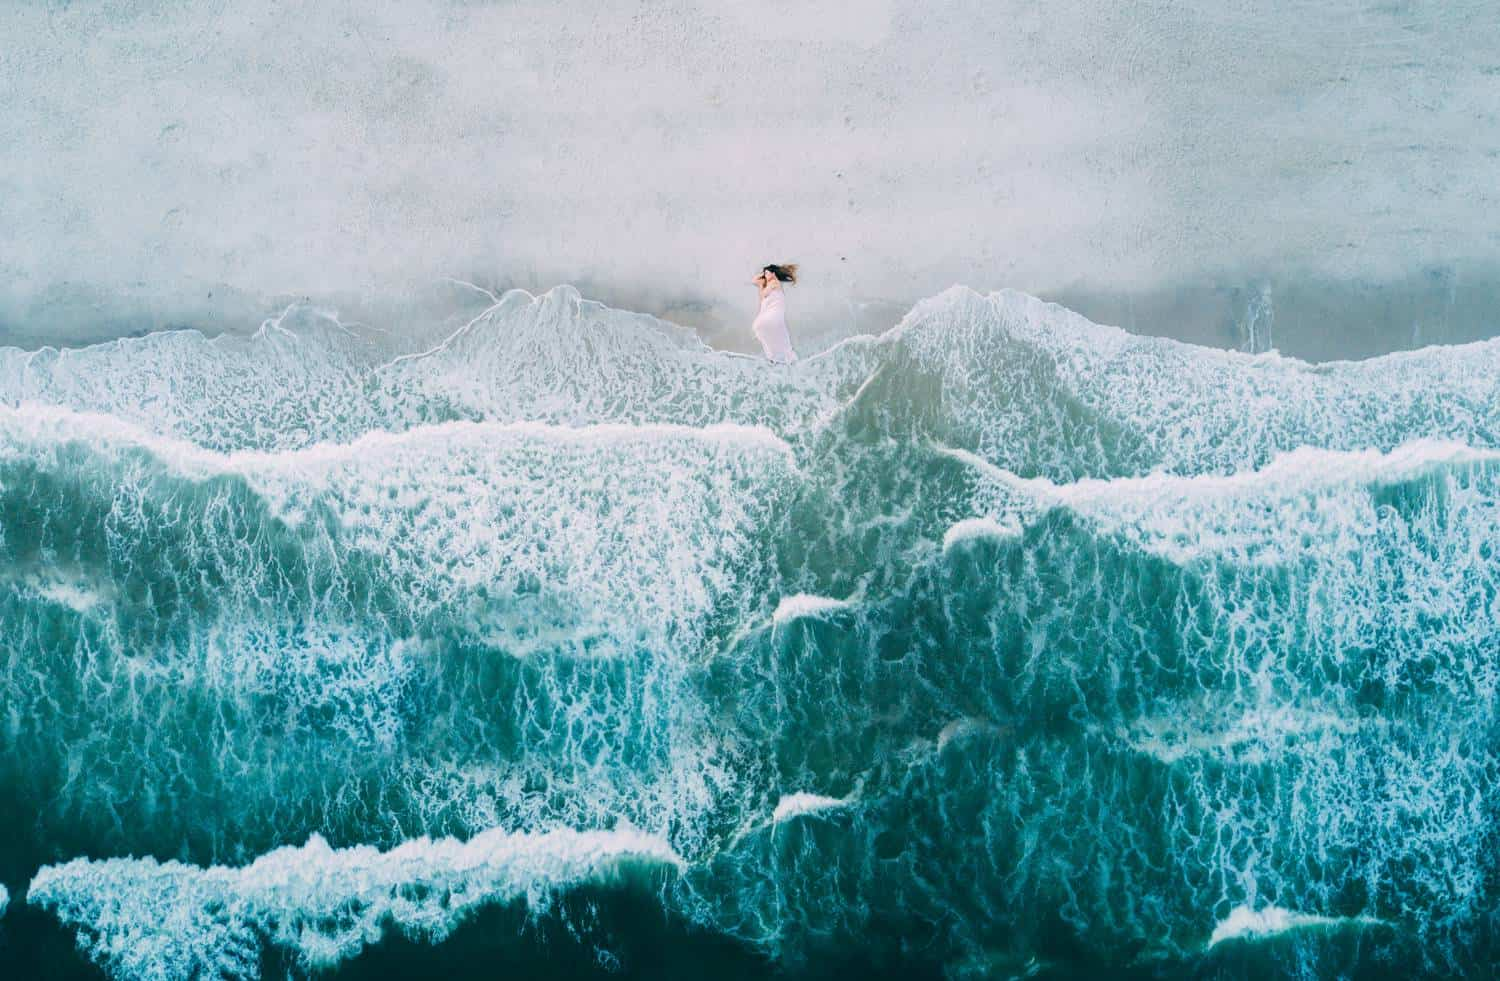 A fine-art drone photograph depicts the tiny image of a white-dressed pregnant woman reclining on a beach above a bright blue ocean's waves.